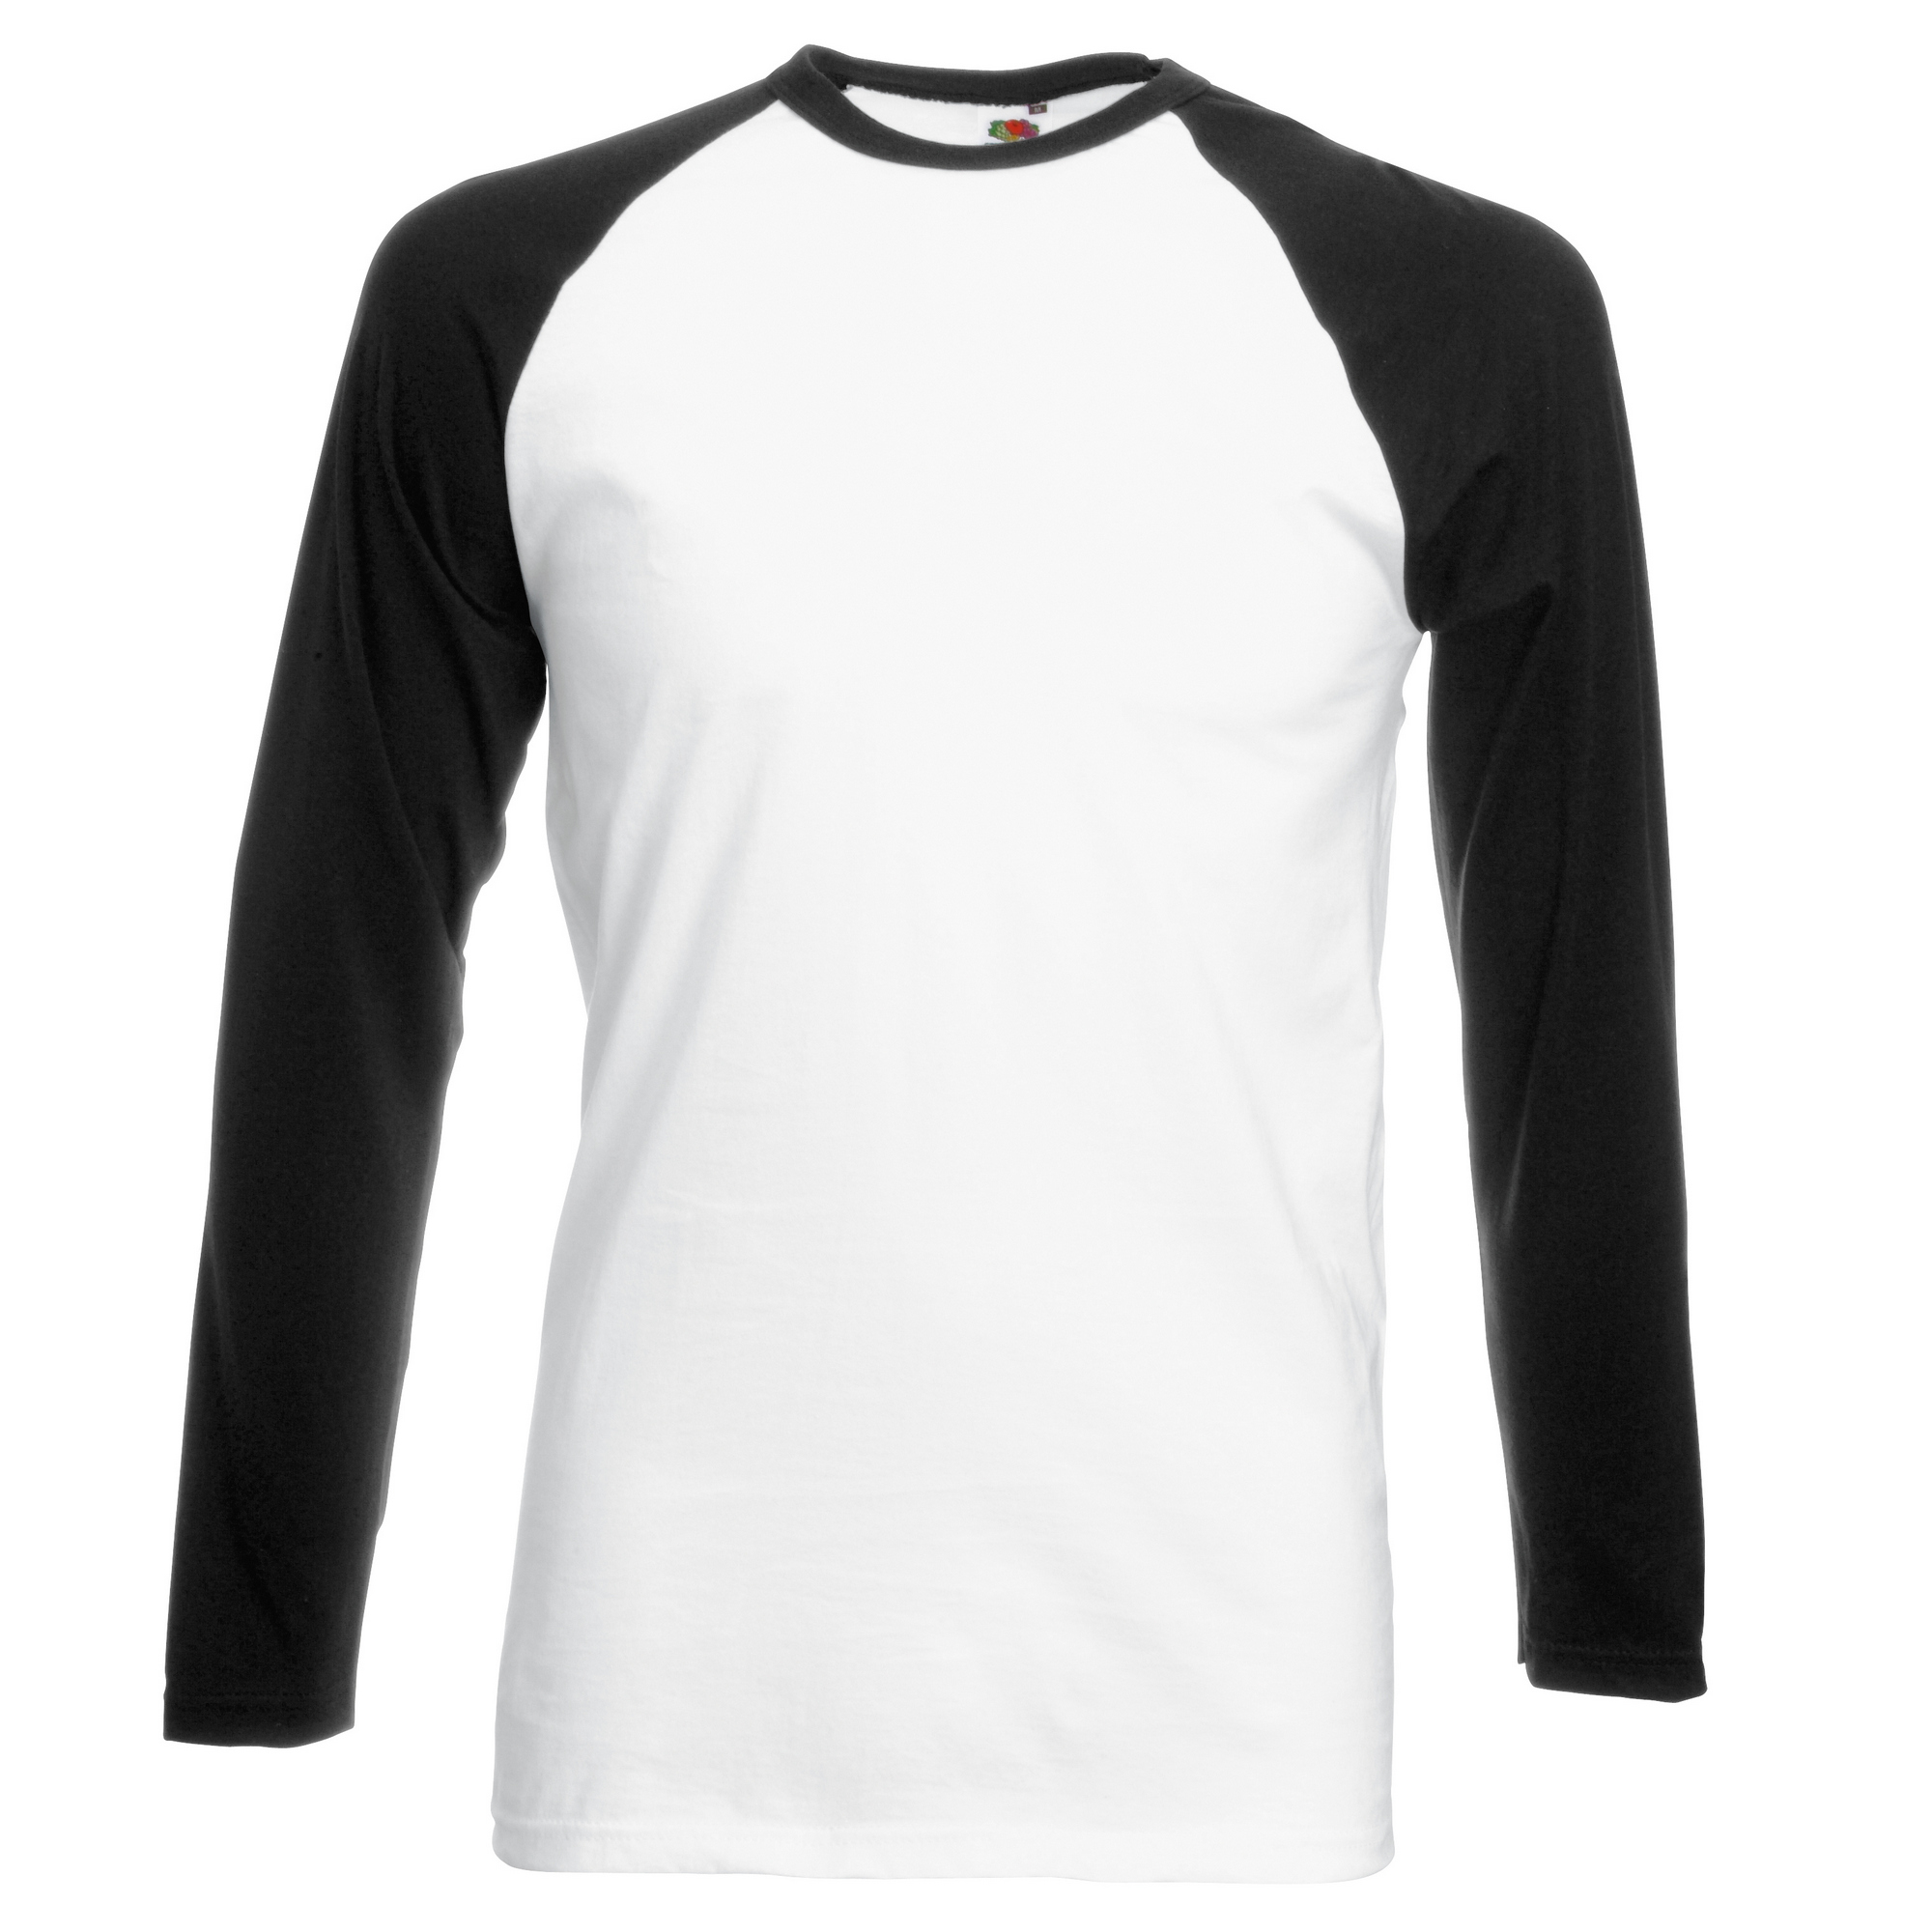 Our Blank Long Sleeve Tees Combine Comfort with Quality We stock wholesale long sleeve t-shirts from a variety of brands including Gildan, Hanes, Comfort Colors, Alo, Champion, and many more.